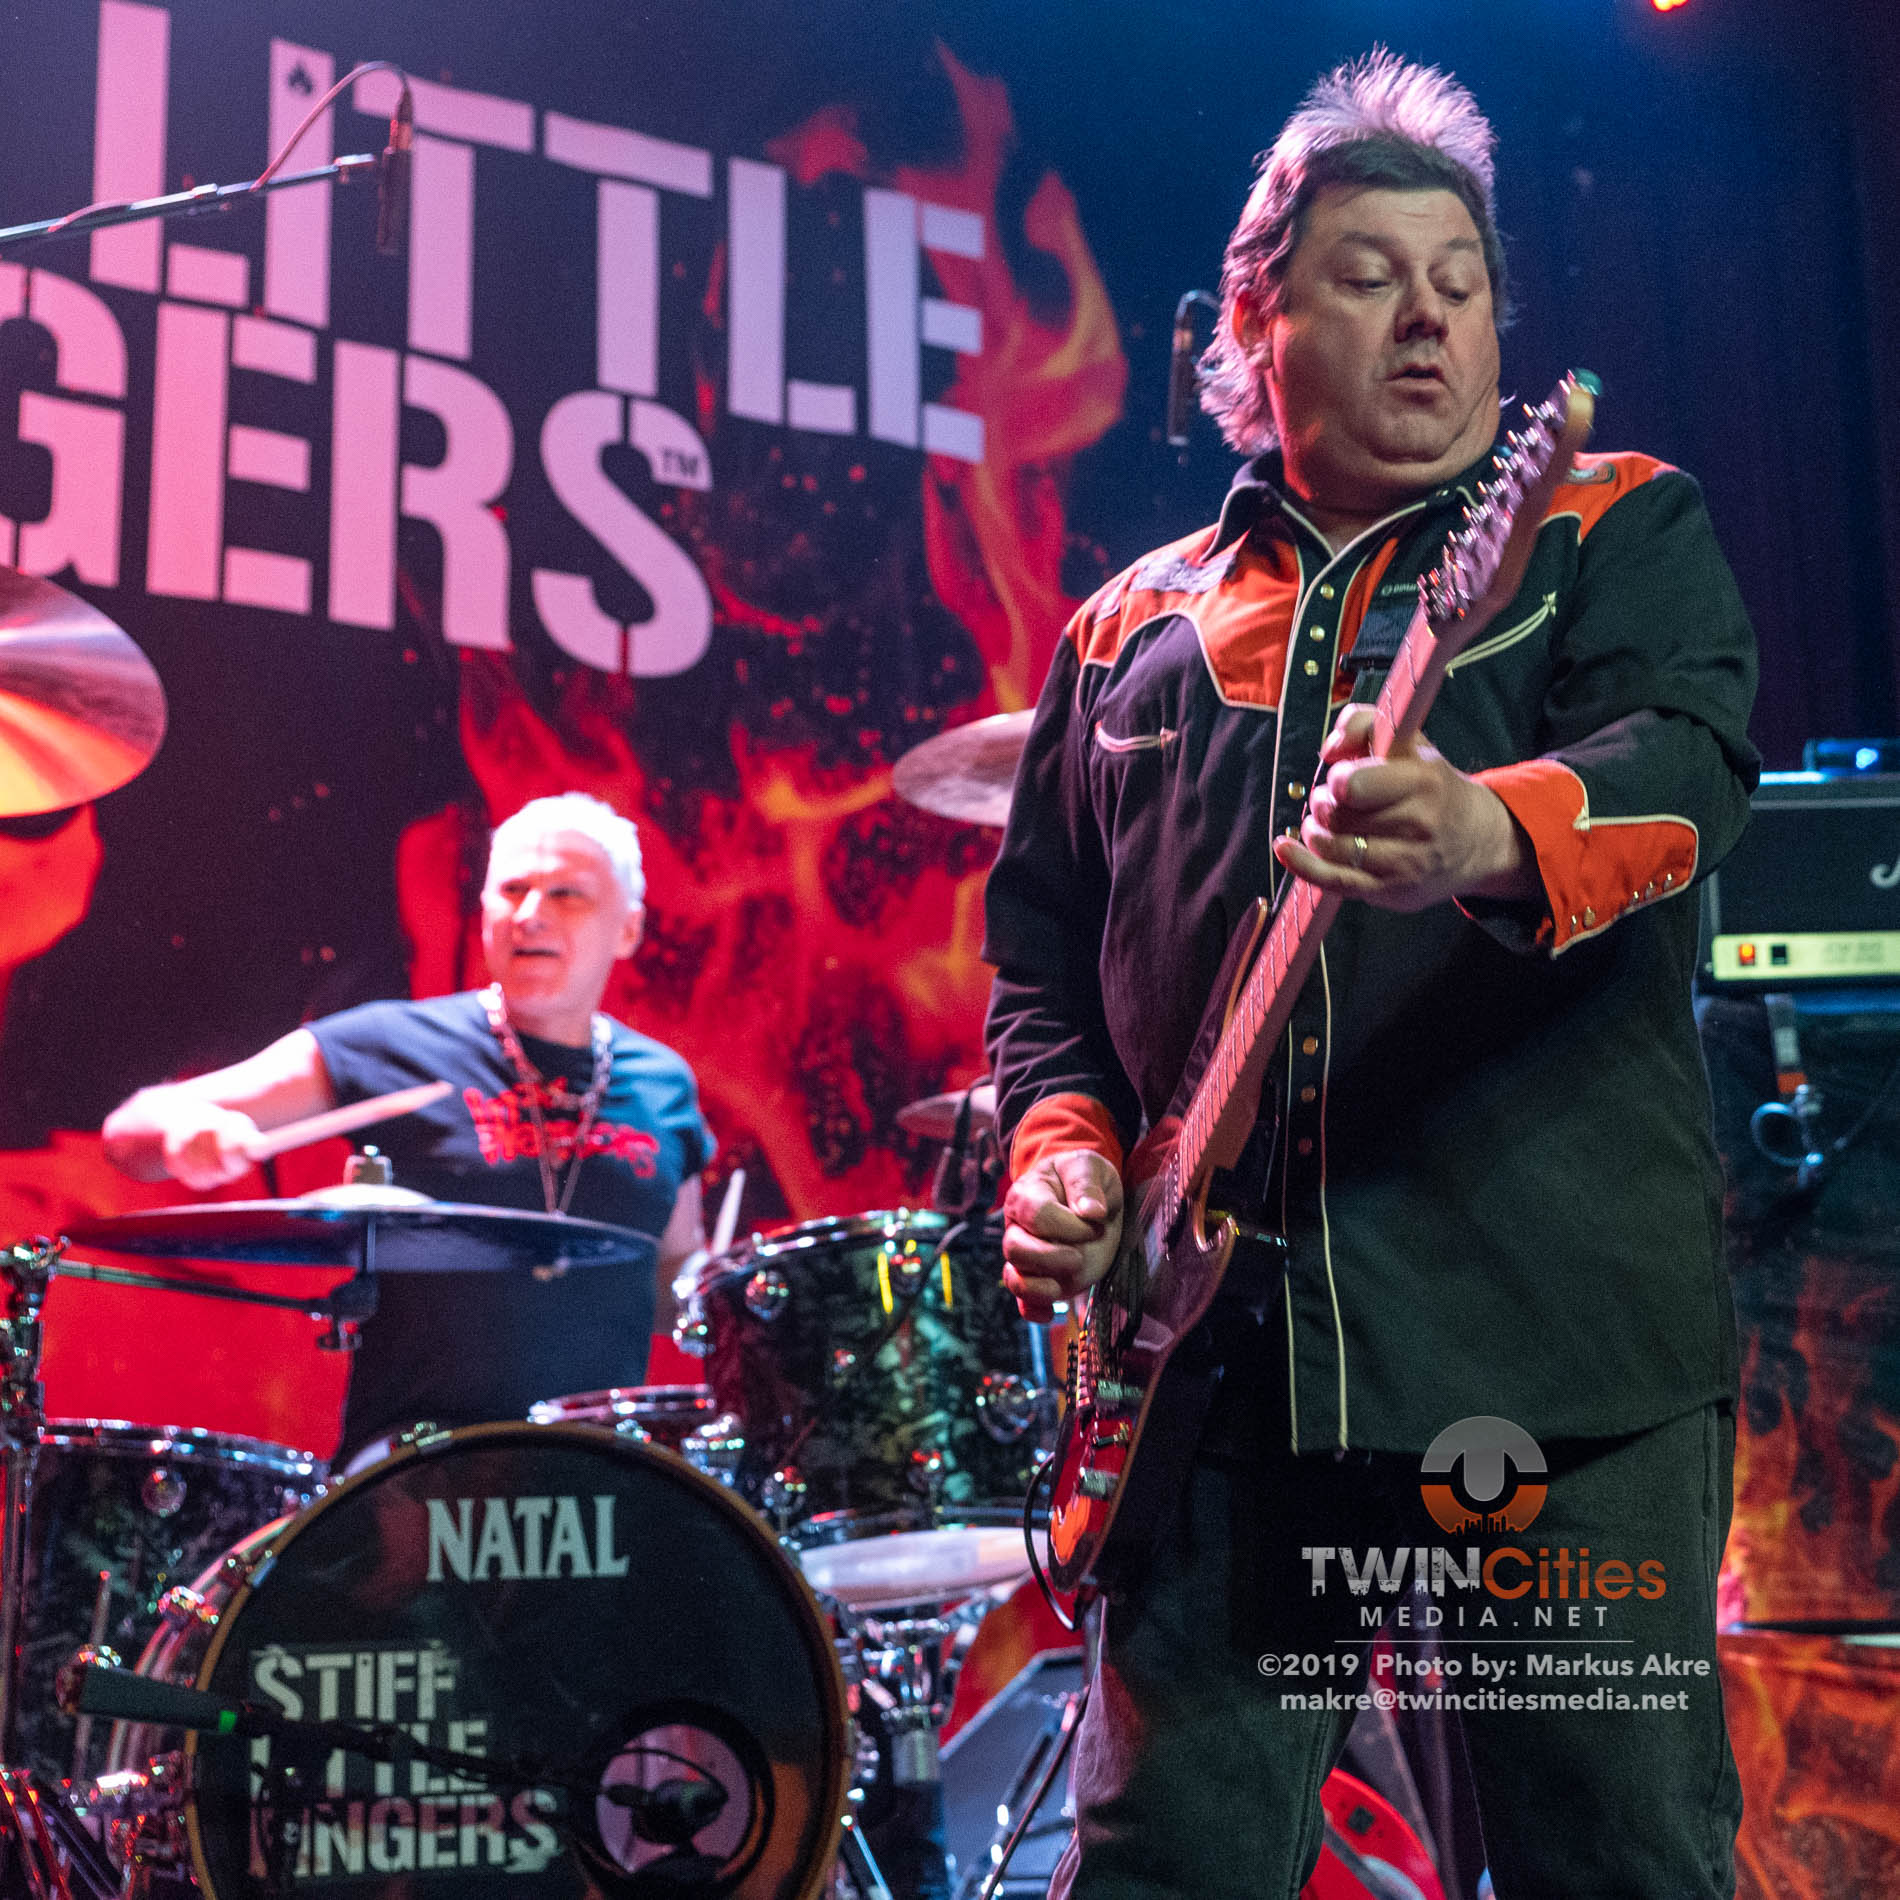 Stiff-Little-Fingers-12